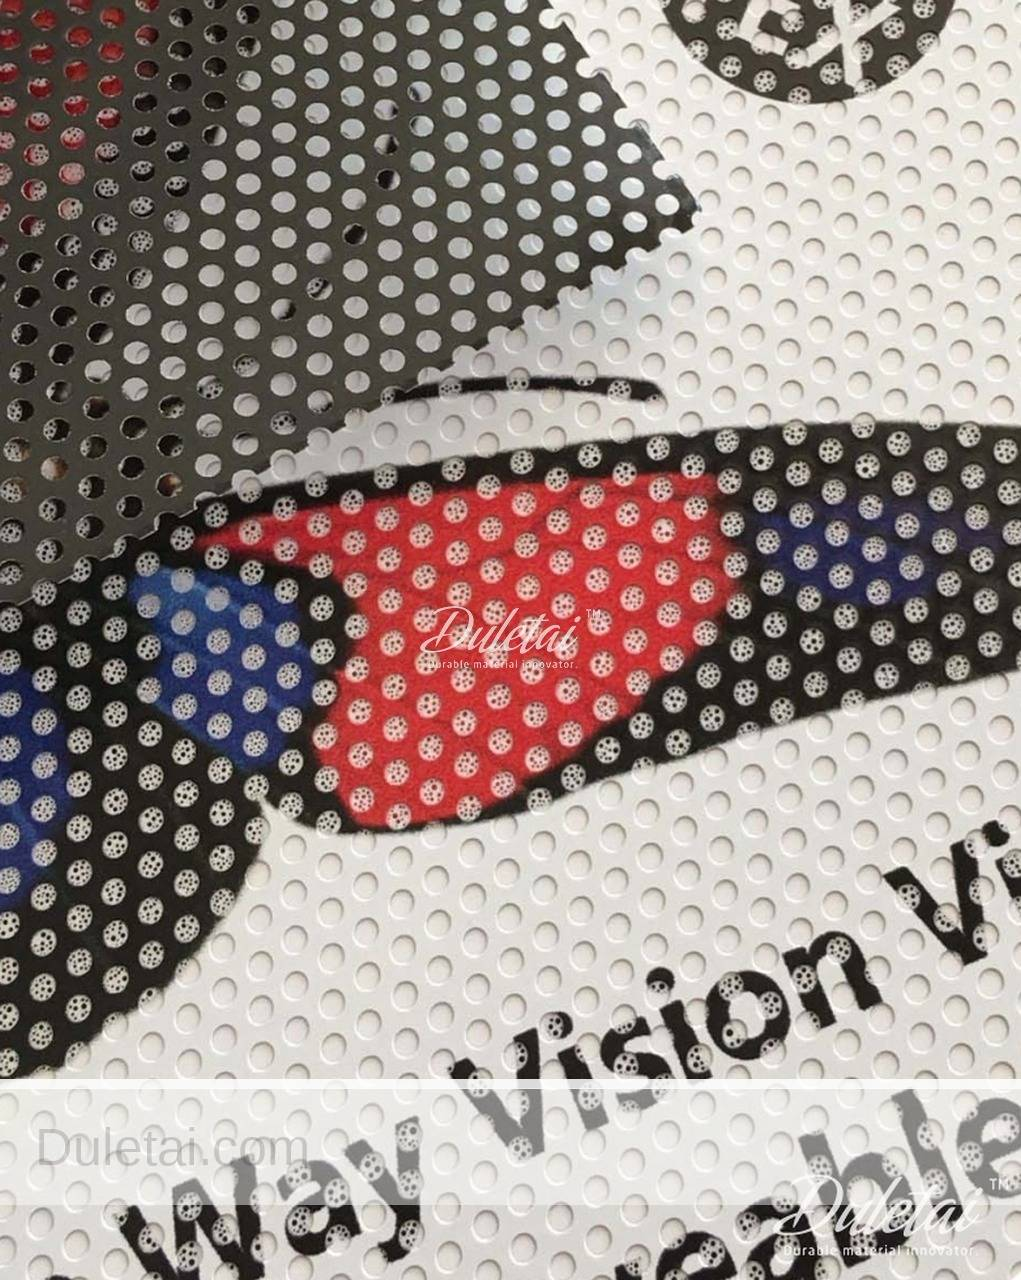 Perforated Mesh Film Printable White One Way Vision Vinyl